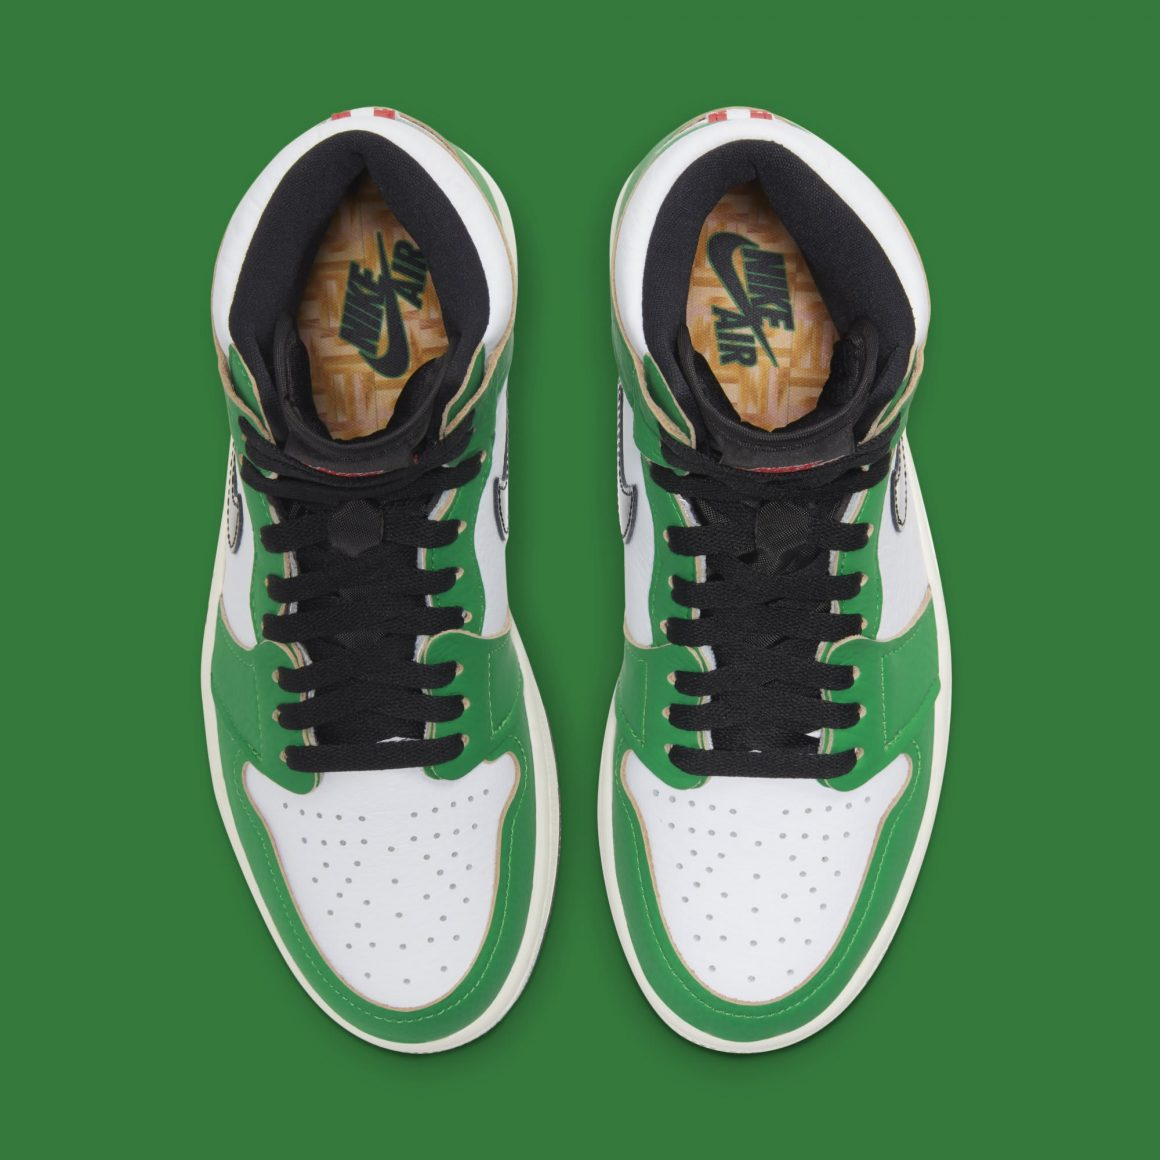 WMNS Air Jordan 1 Retro High OG ''Lucky Green'' - DB4612-300